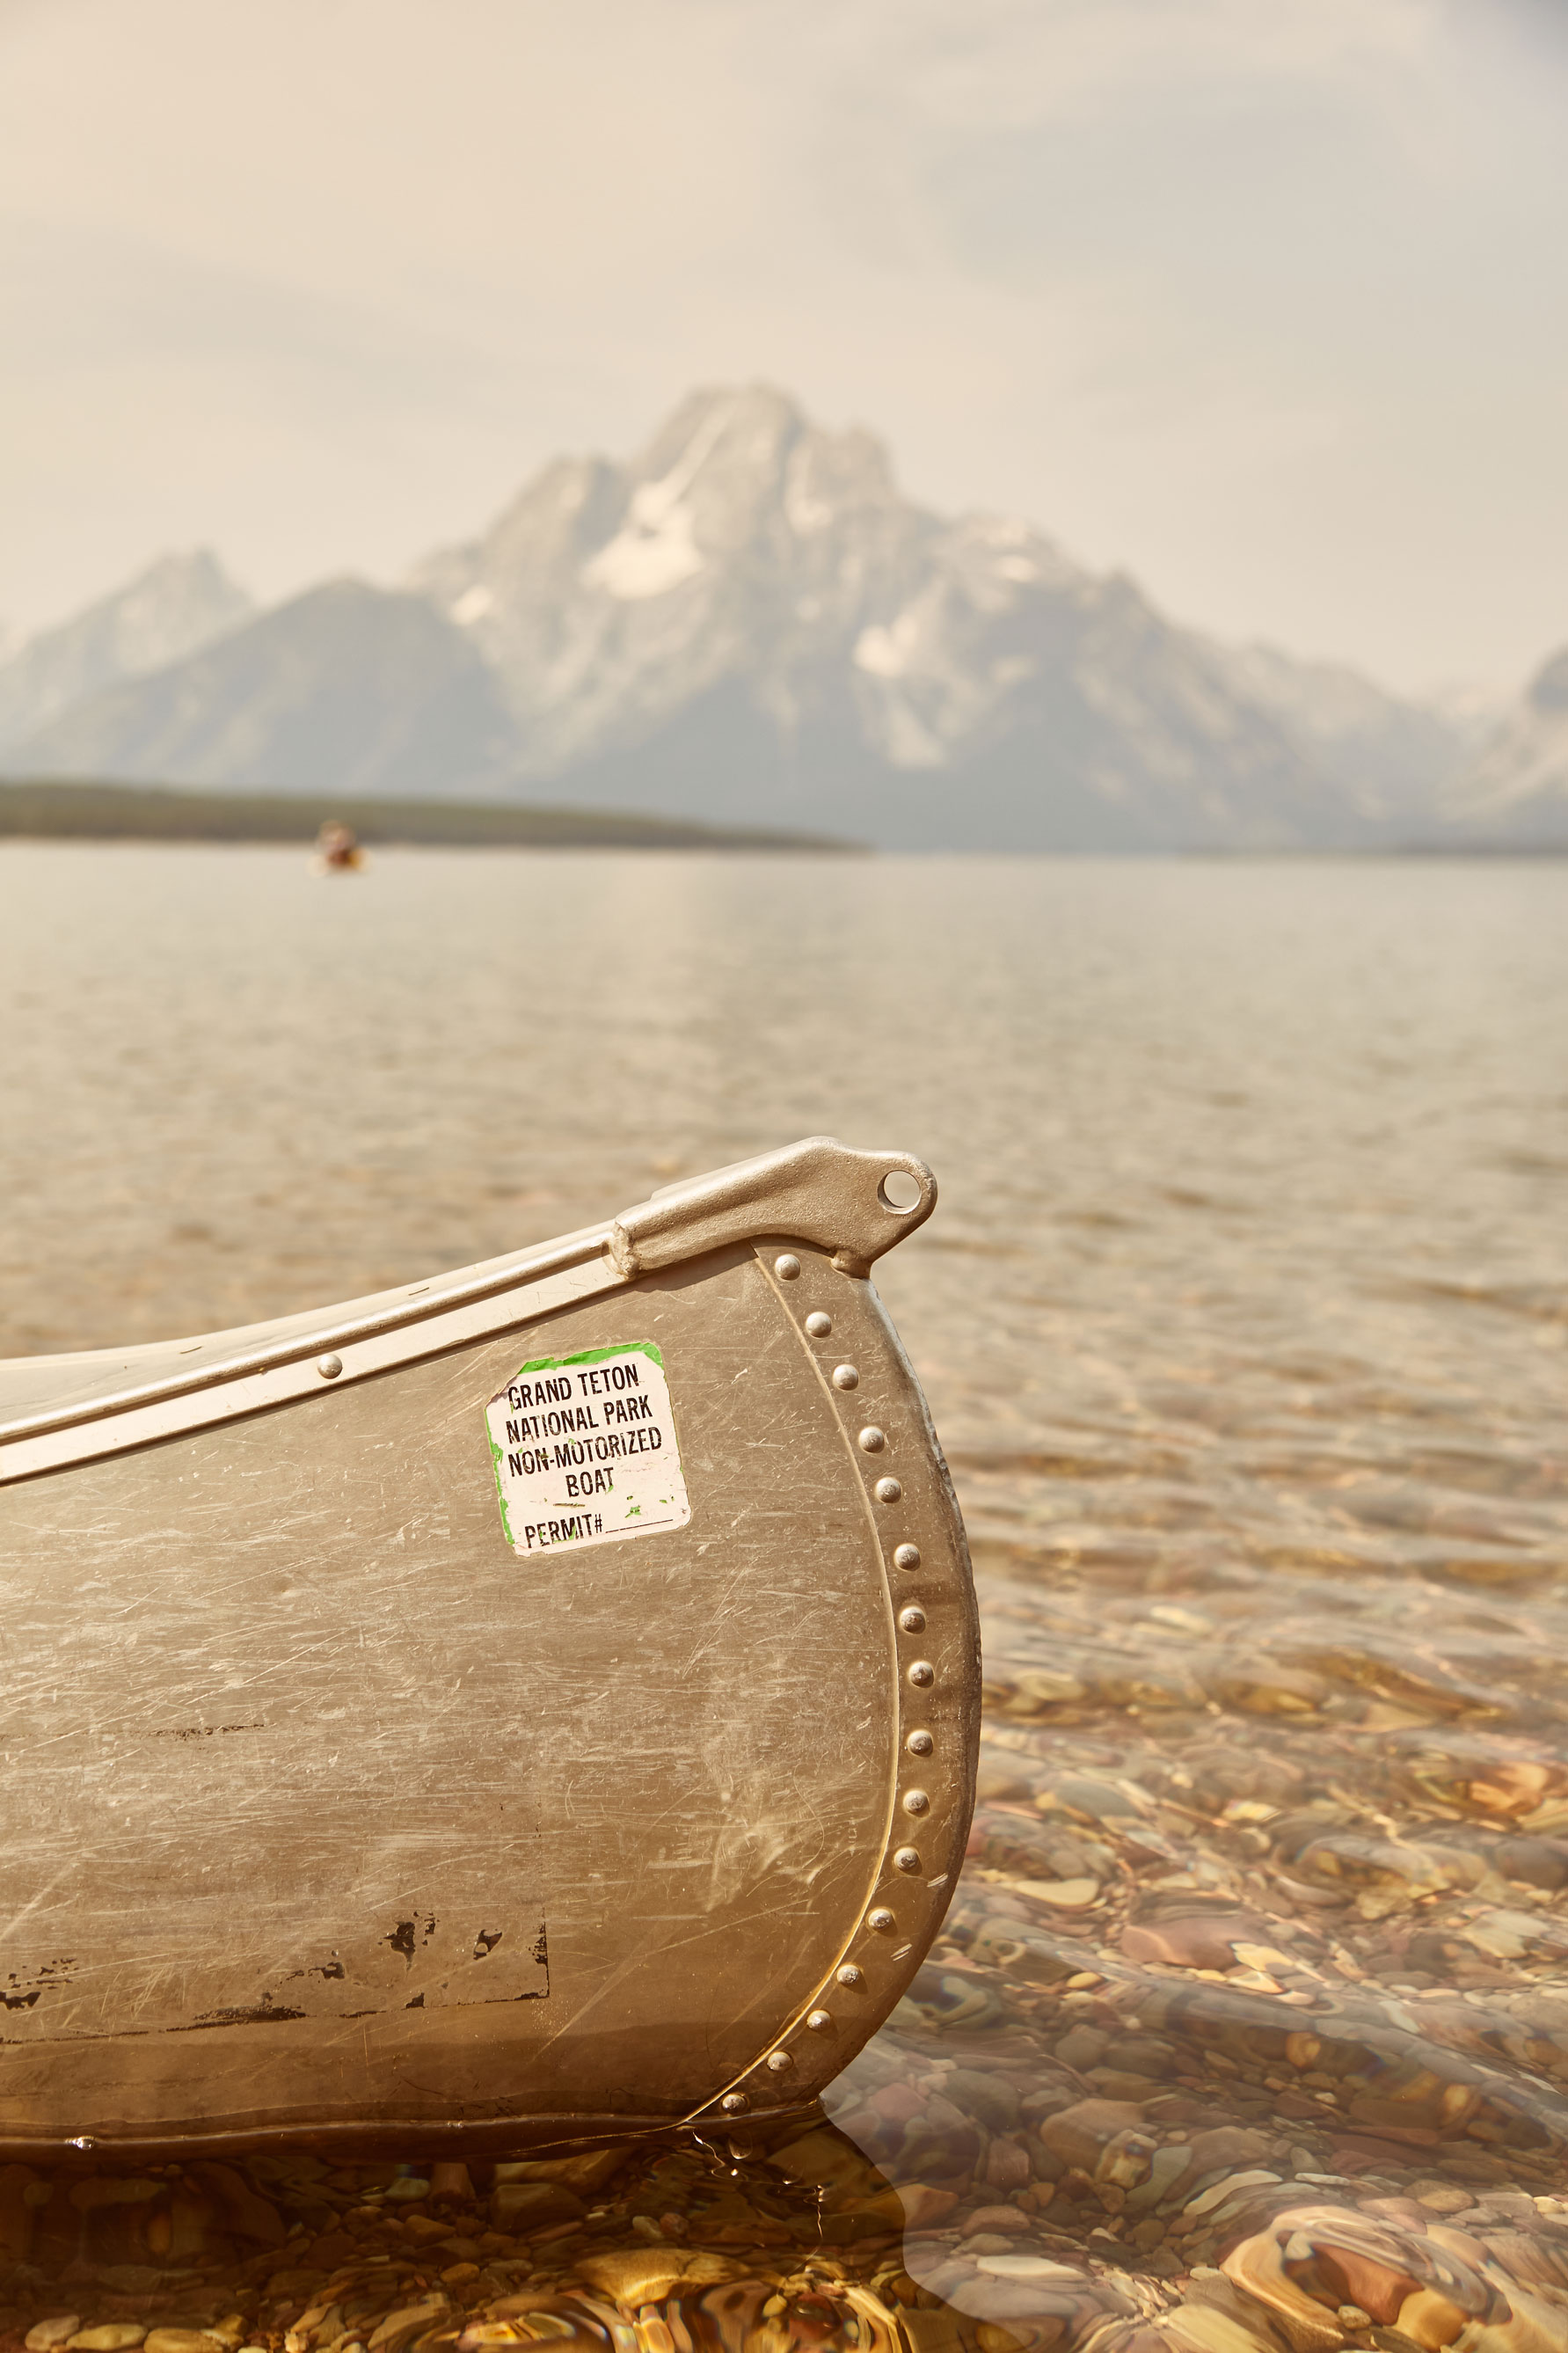 grand teton usa canoe montagne